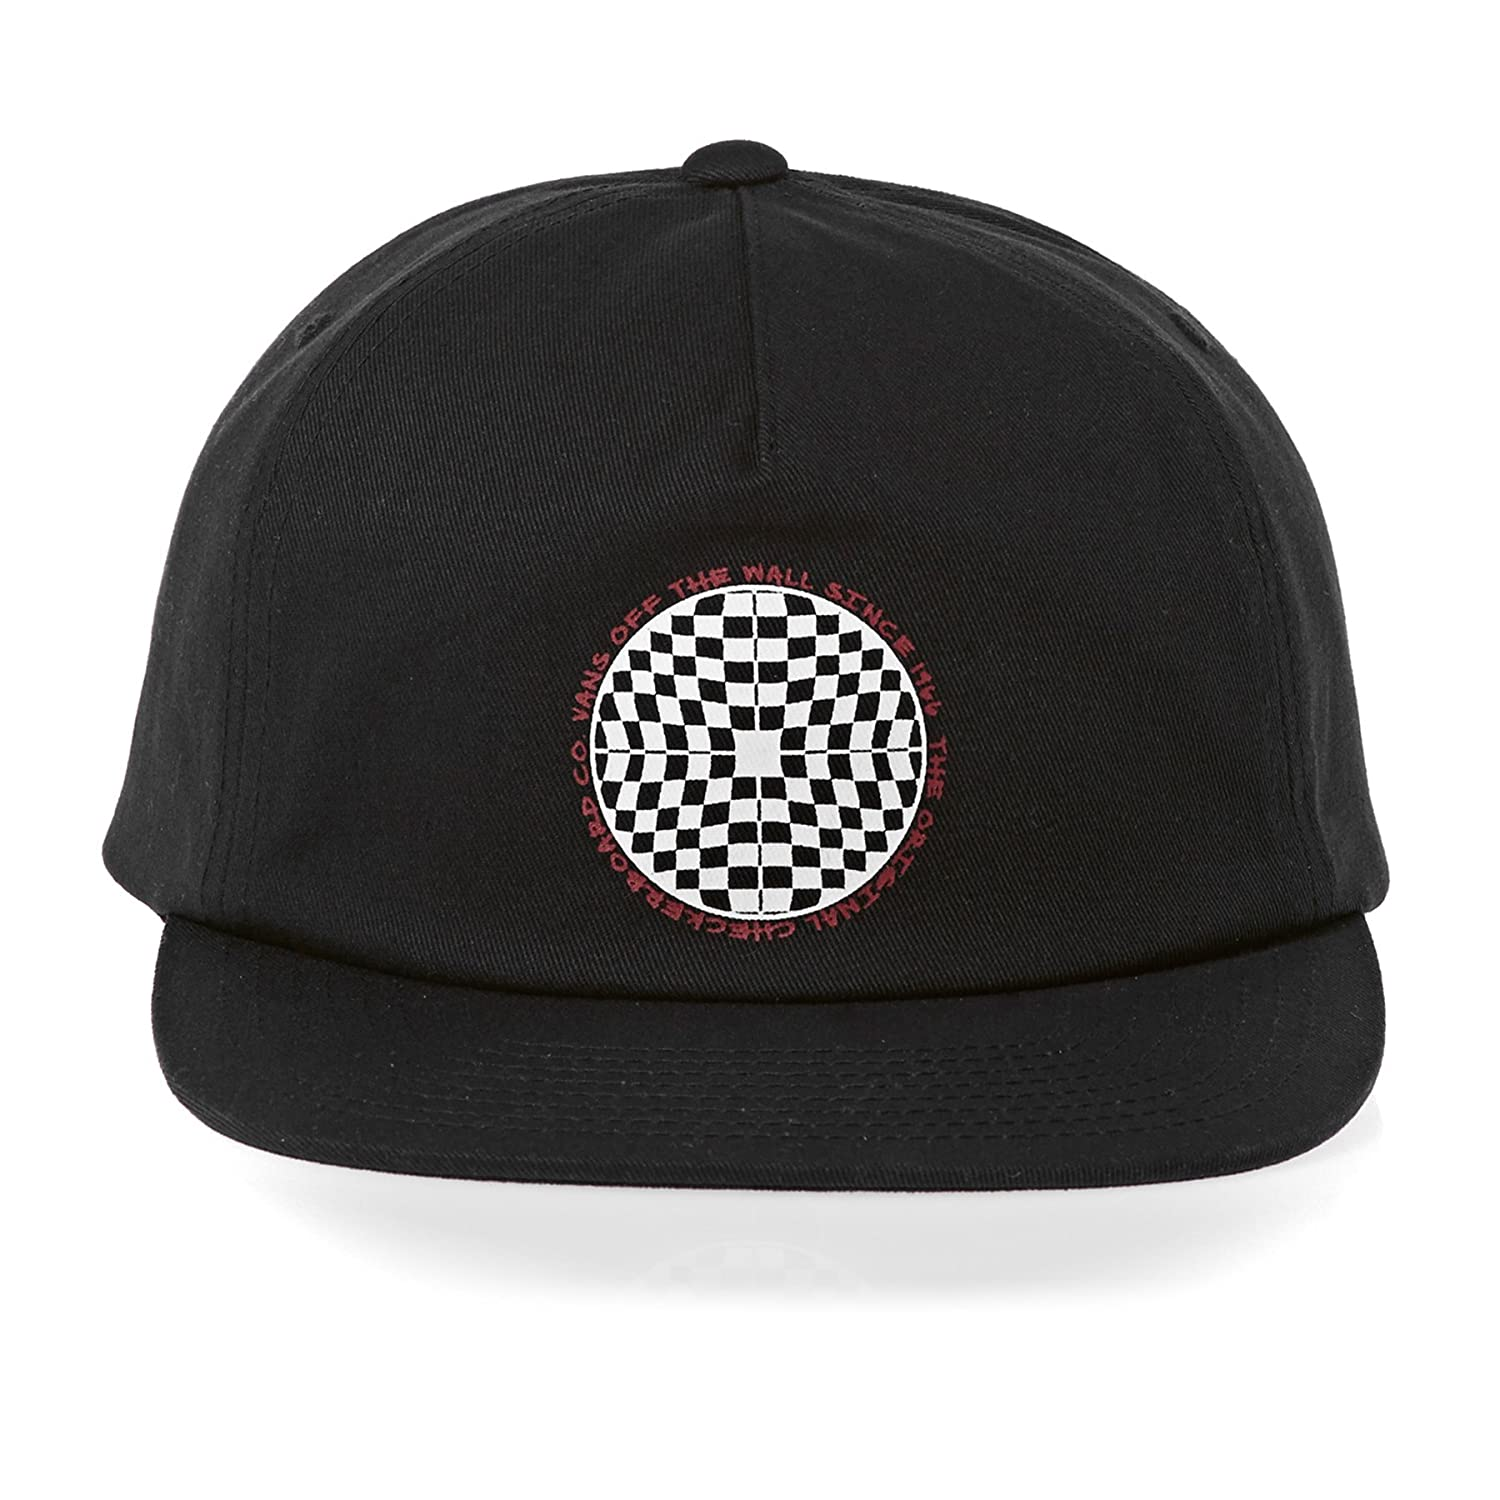 87664135abe Vans Checkered Shallow Cap One Size Black at Amazon Men s Clothing store